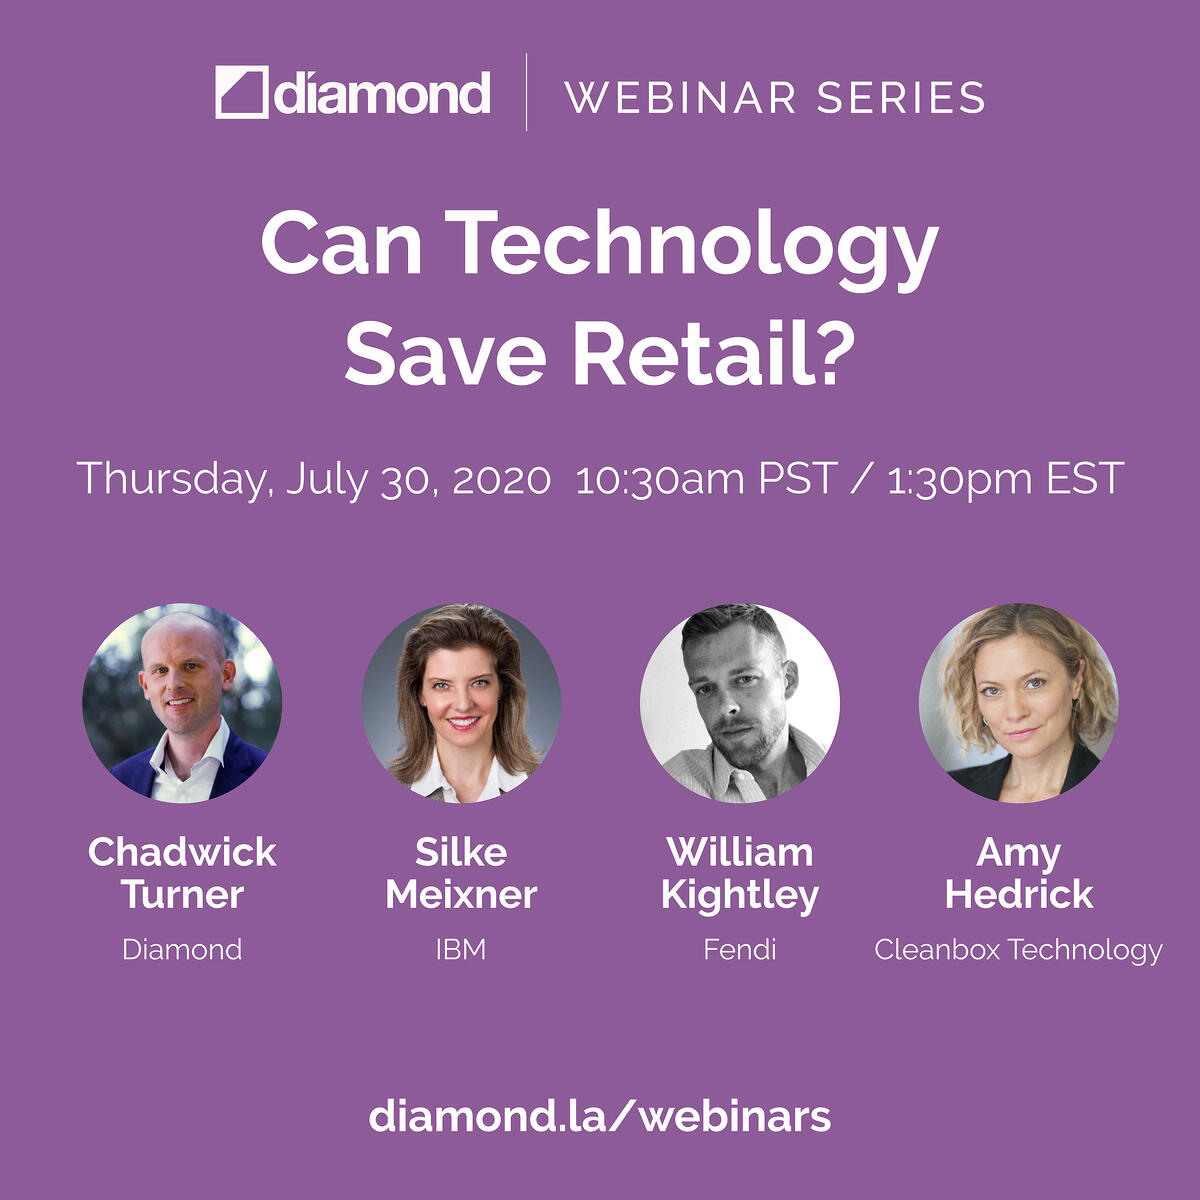 Image of Diamond Panelists for July 30th webinar at 1030am pst/130pm est, Chadwick Turner of Diamond, Silke Meixner of IBM, William Kightley of Fendi and Amy Hedrick with Cleanbox Technology